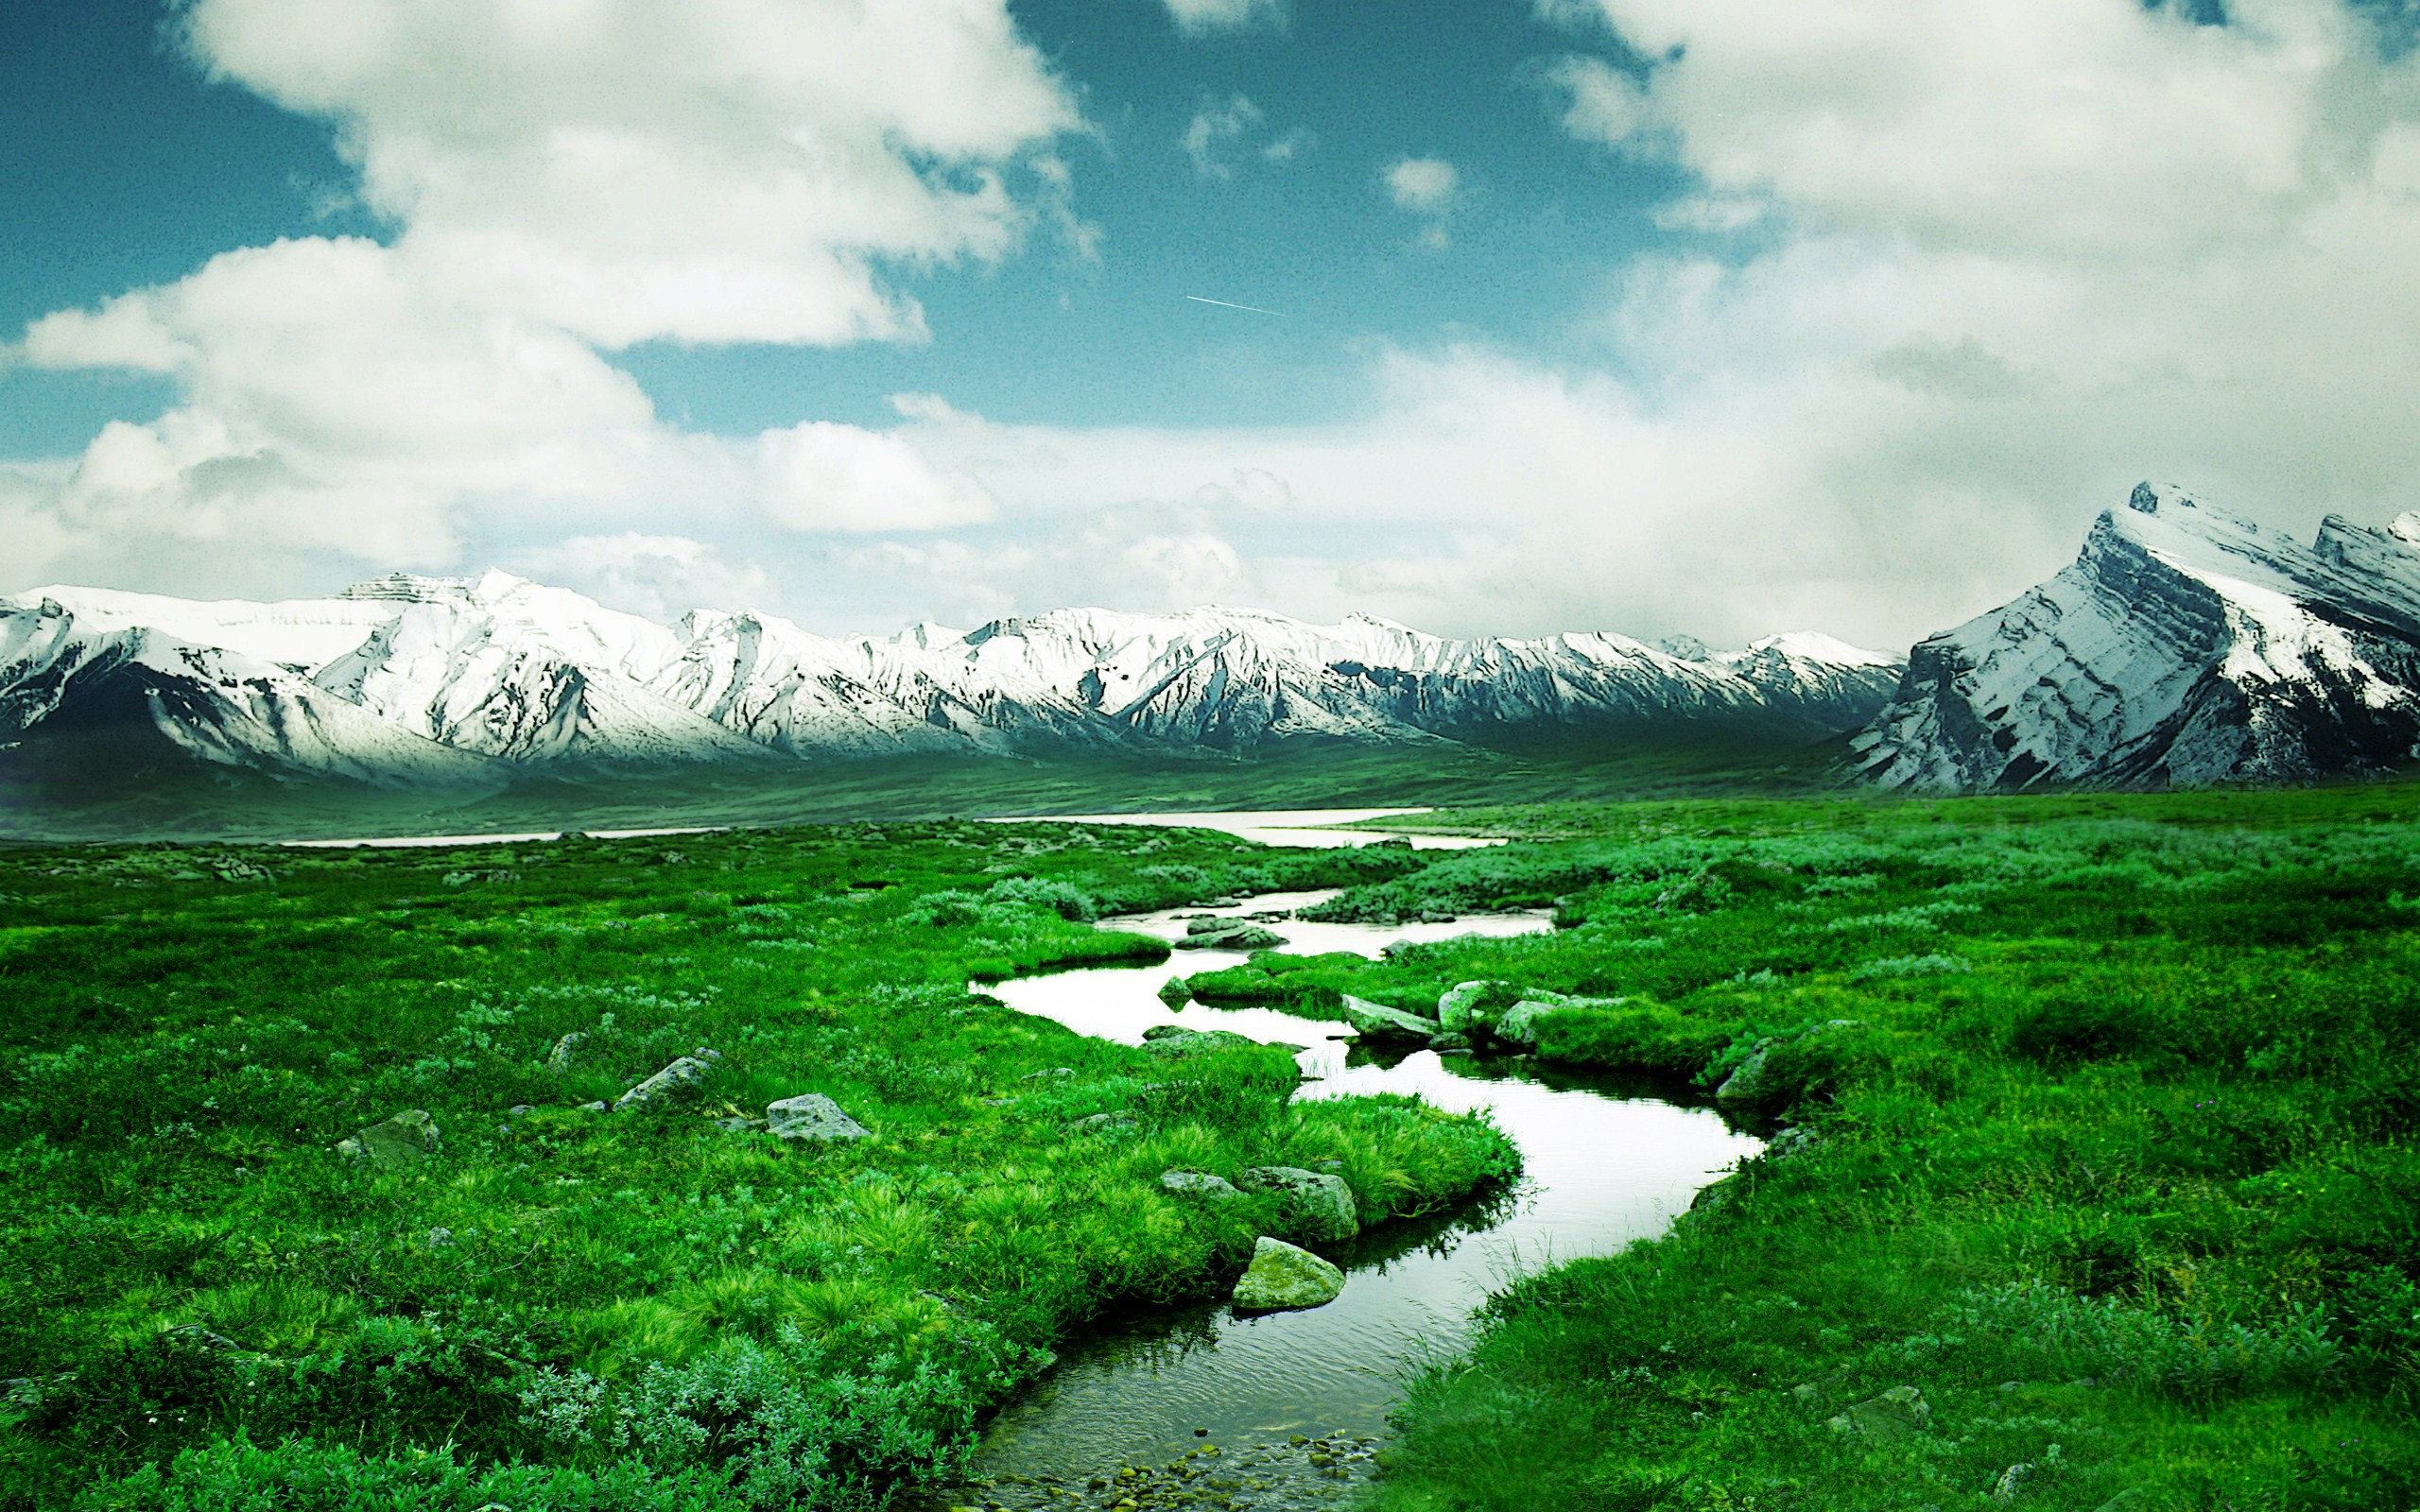 Norway Mountain River Wallpapers HD Wallpapers 2560x1600